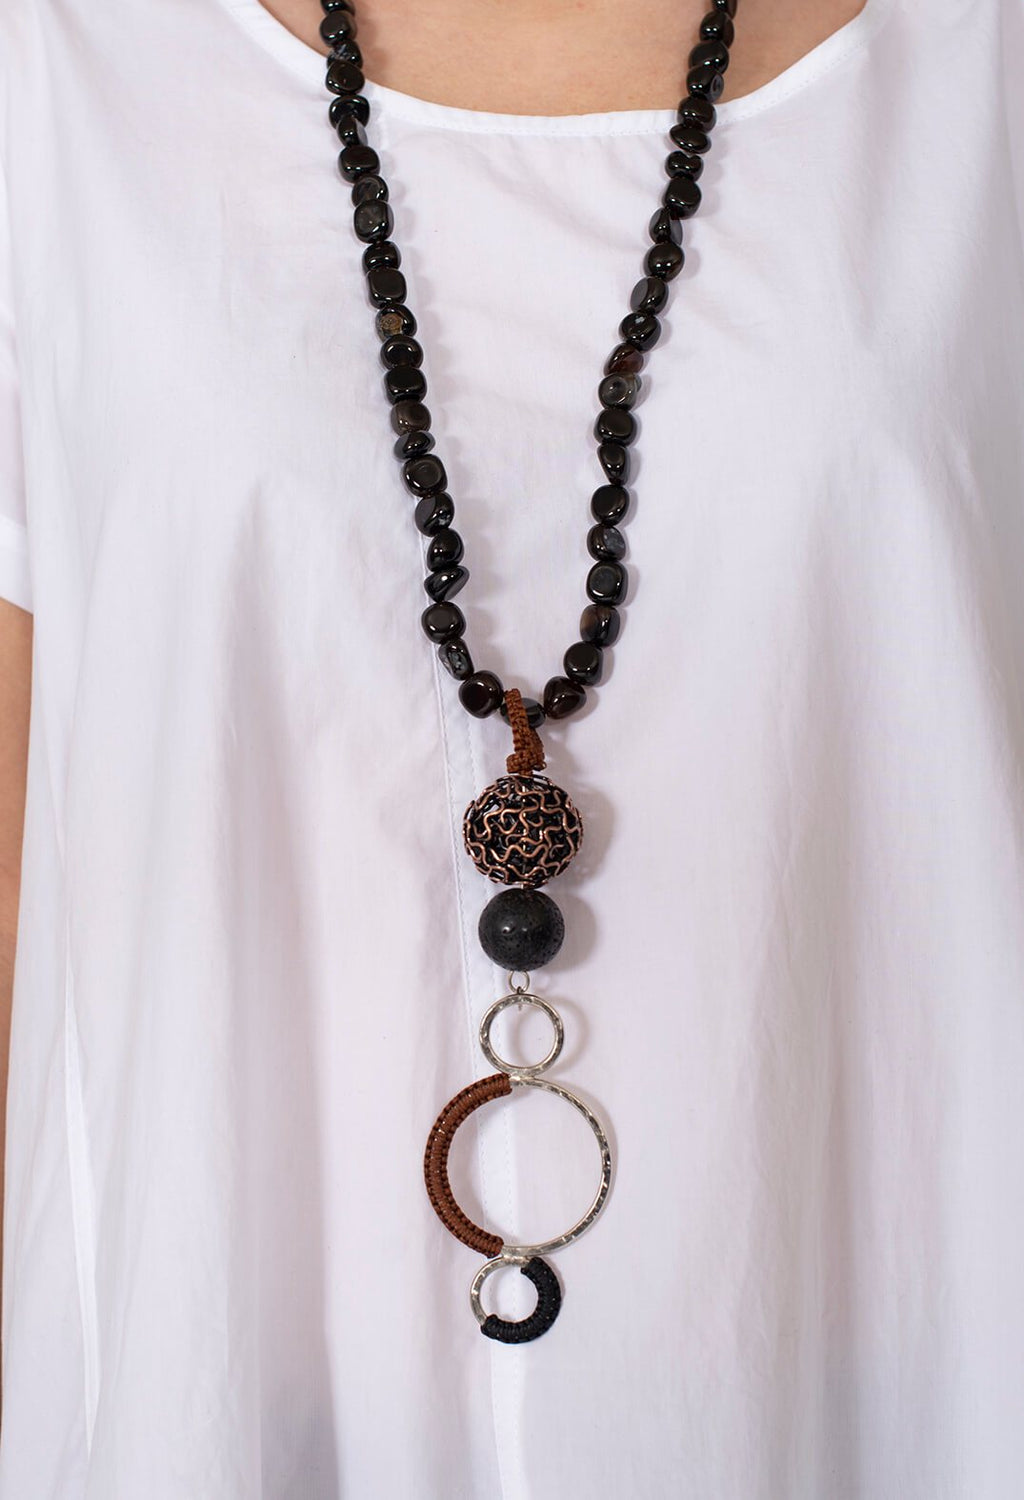 Long Beaded Necklace in Agate and Metal